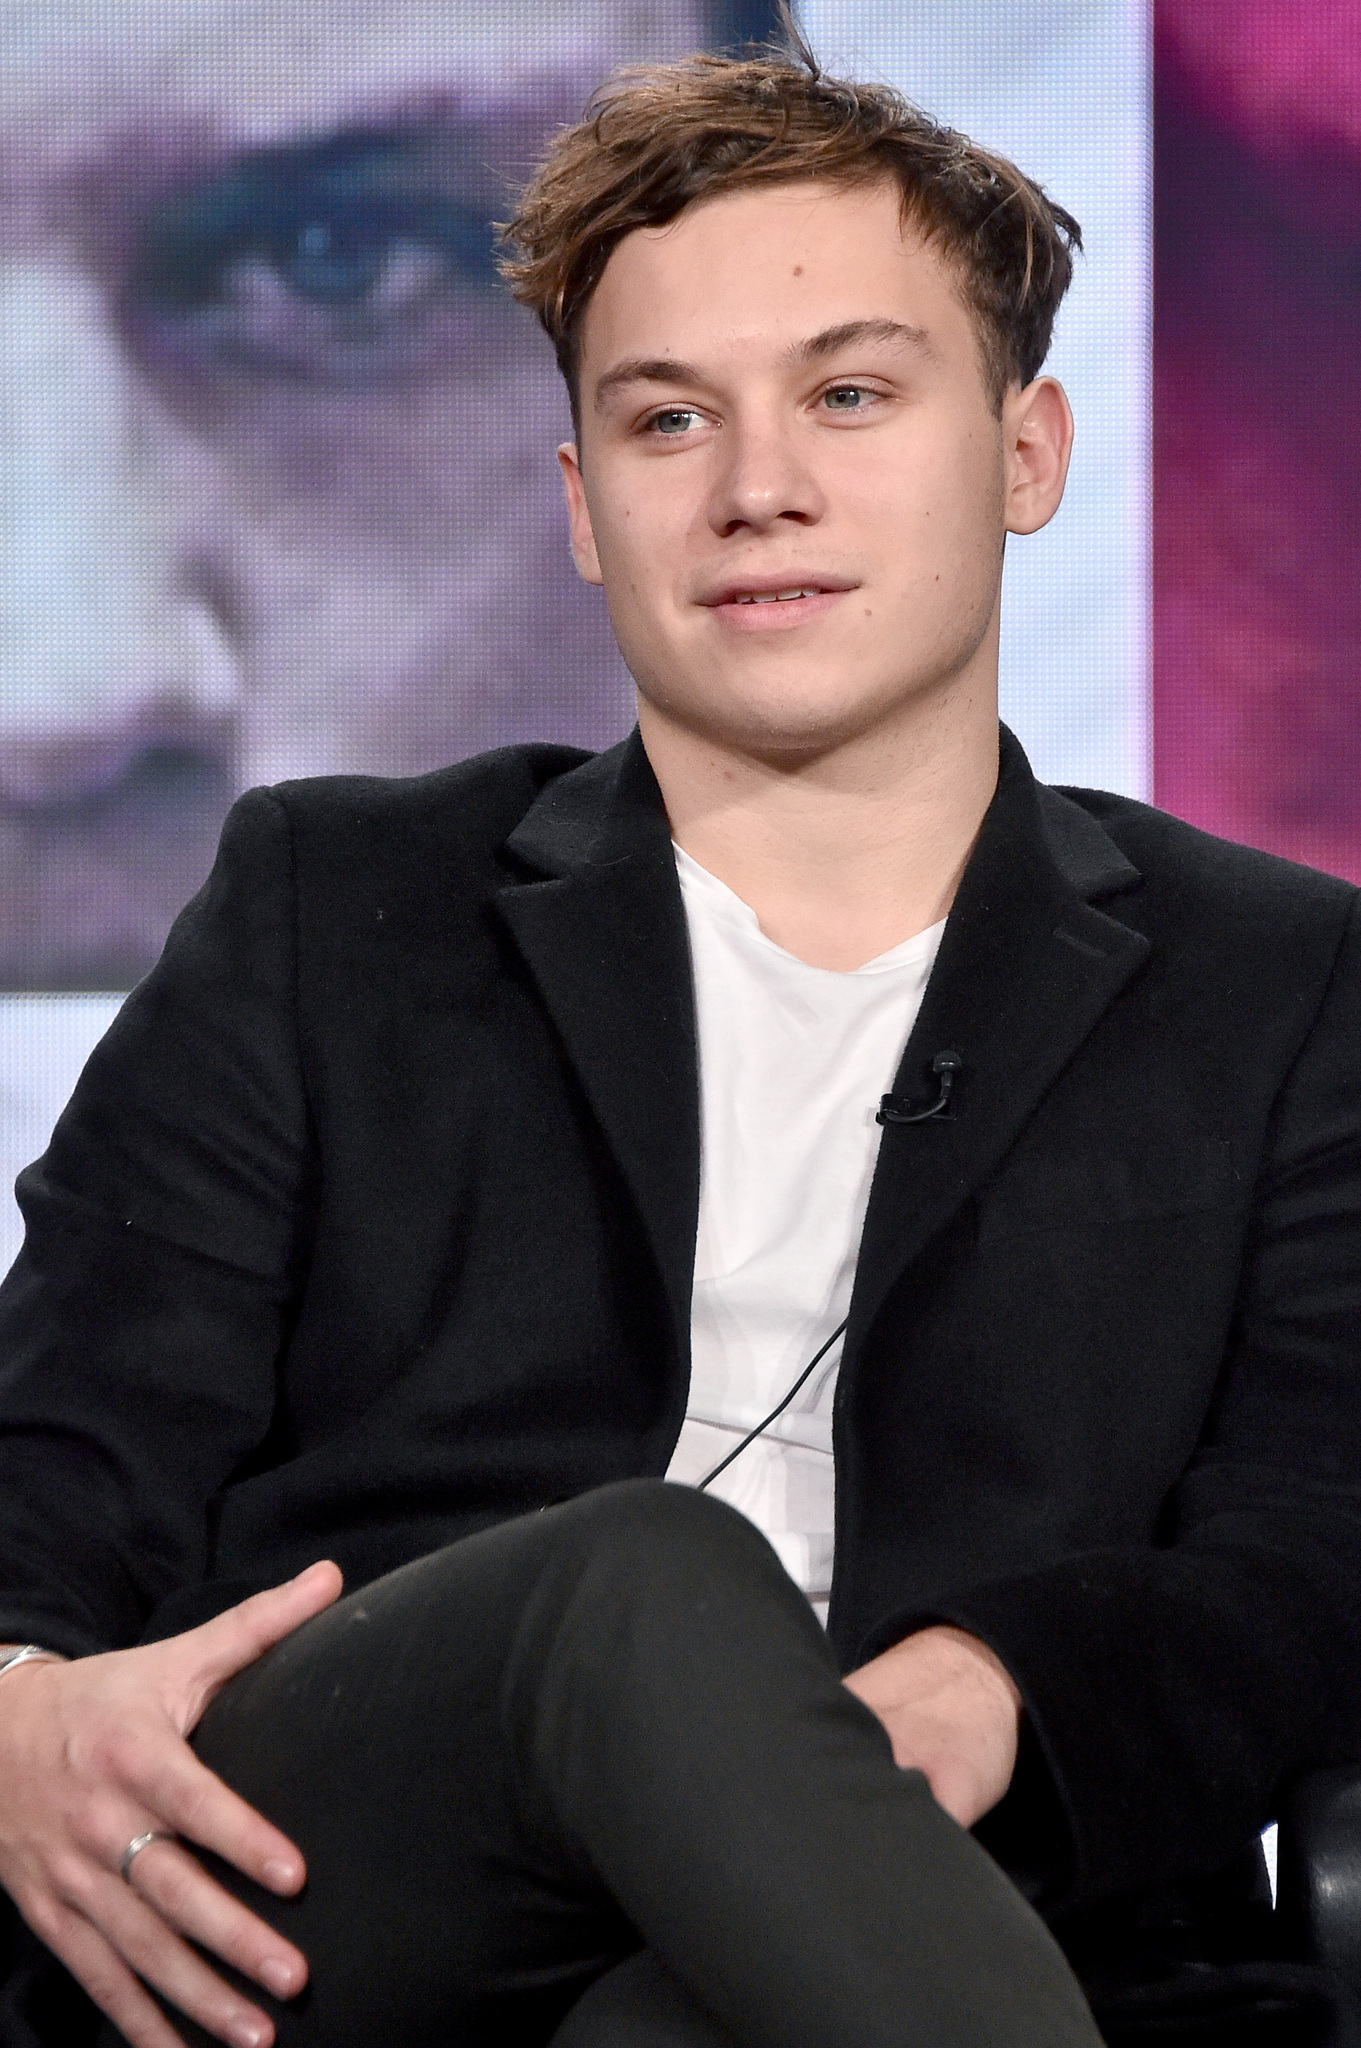 finn cole actor agefinn cole actor, finn cole age, finn cole height, finn cole instagram, finn cole joe cole, finn cole actor age, finn cole peaky blinders, finn cole wikipedia, finn cole interview, finn cole biography, finn cole date of birth, vampire diaries kol and finn, finn cole twitter, finn cole brother, finn cole shirtless, finn cole agent, finn cole tumblr, finn cole animal kingdom, finn cole harry potter, finn cole birthday